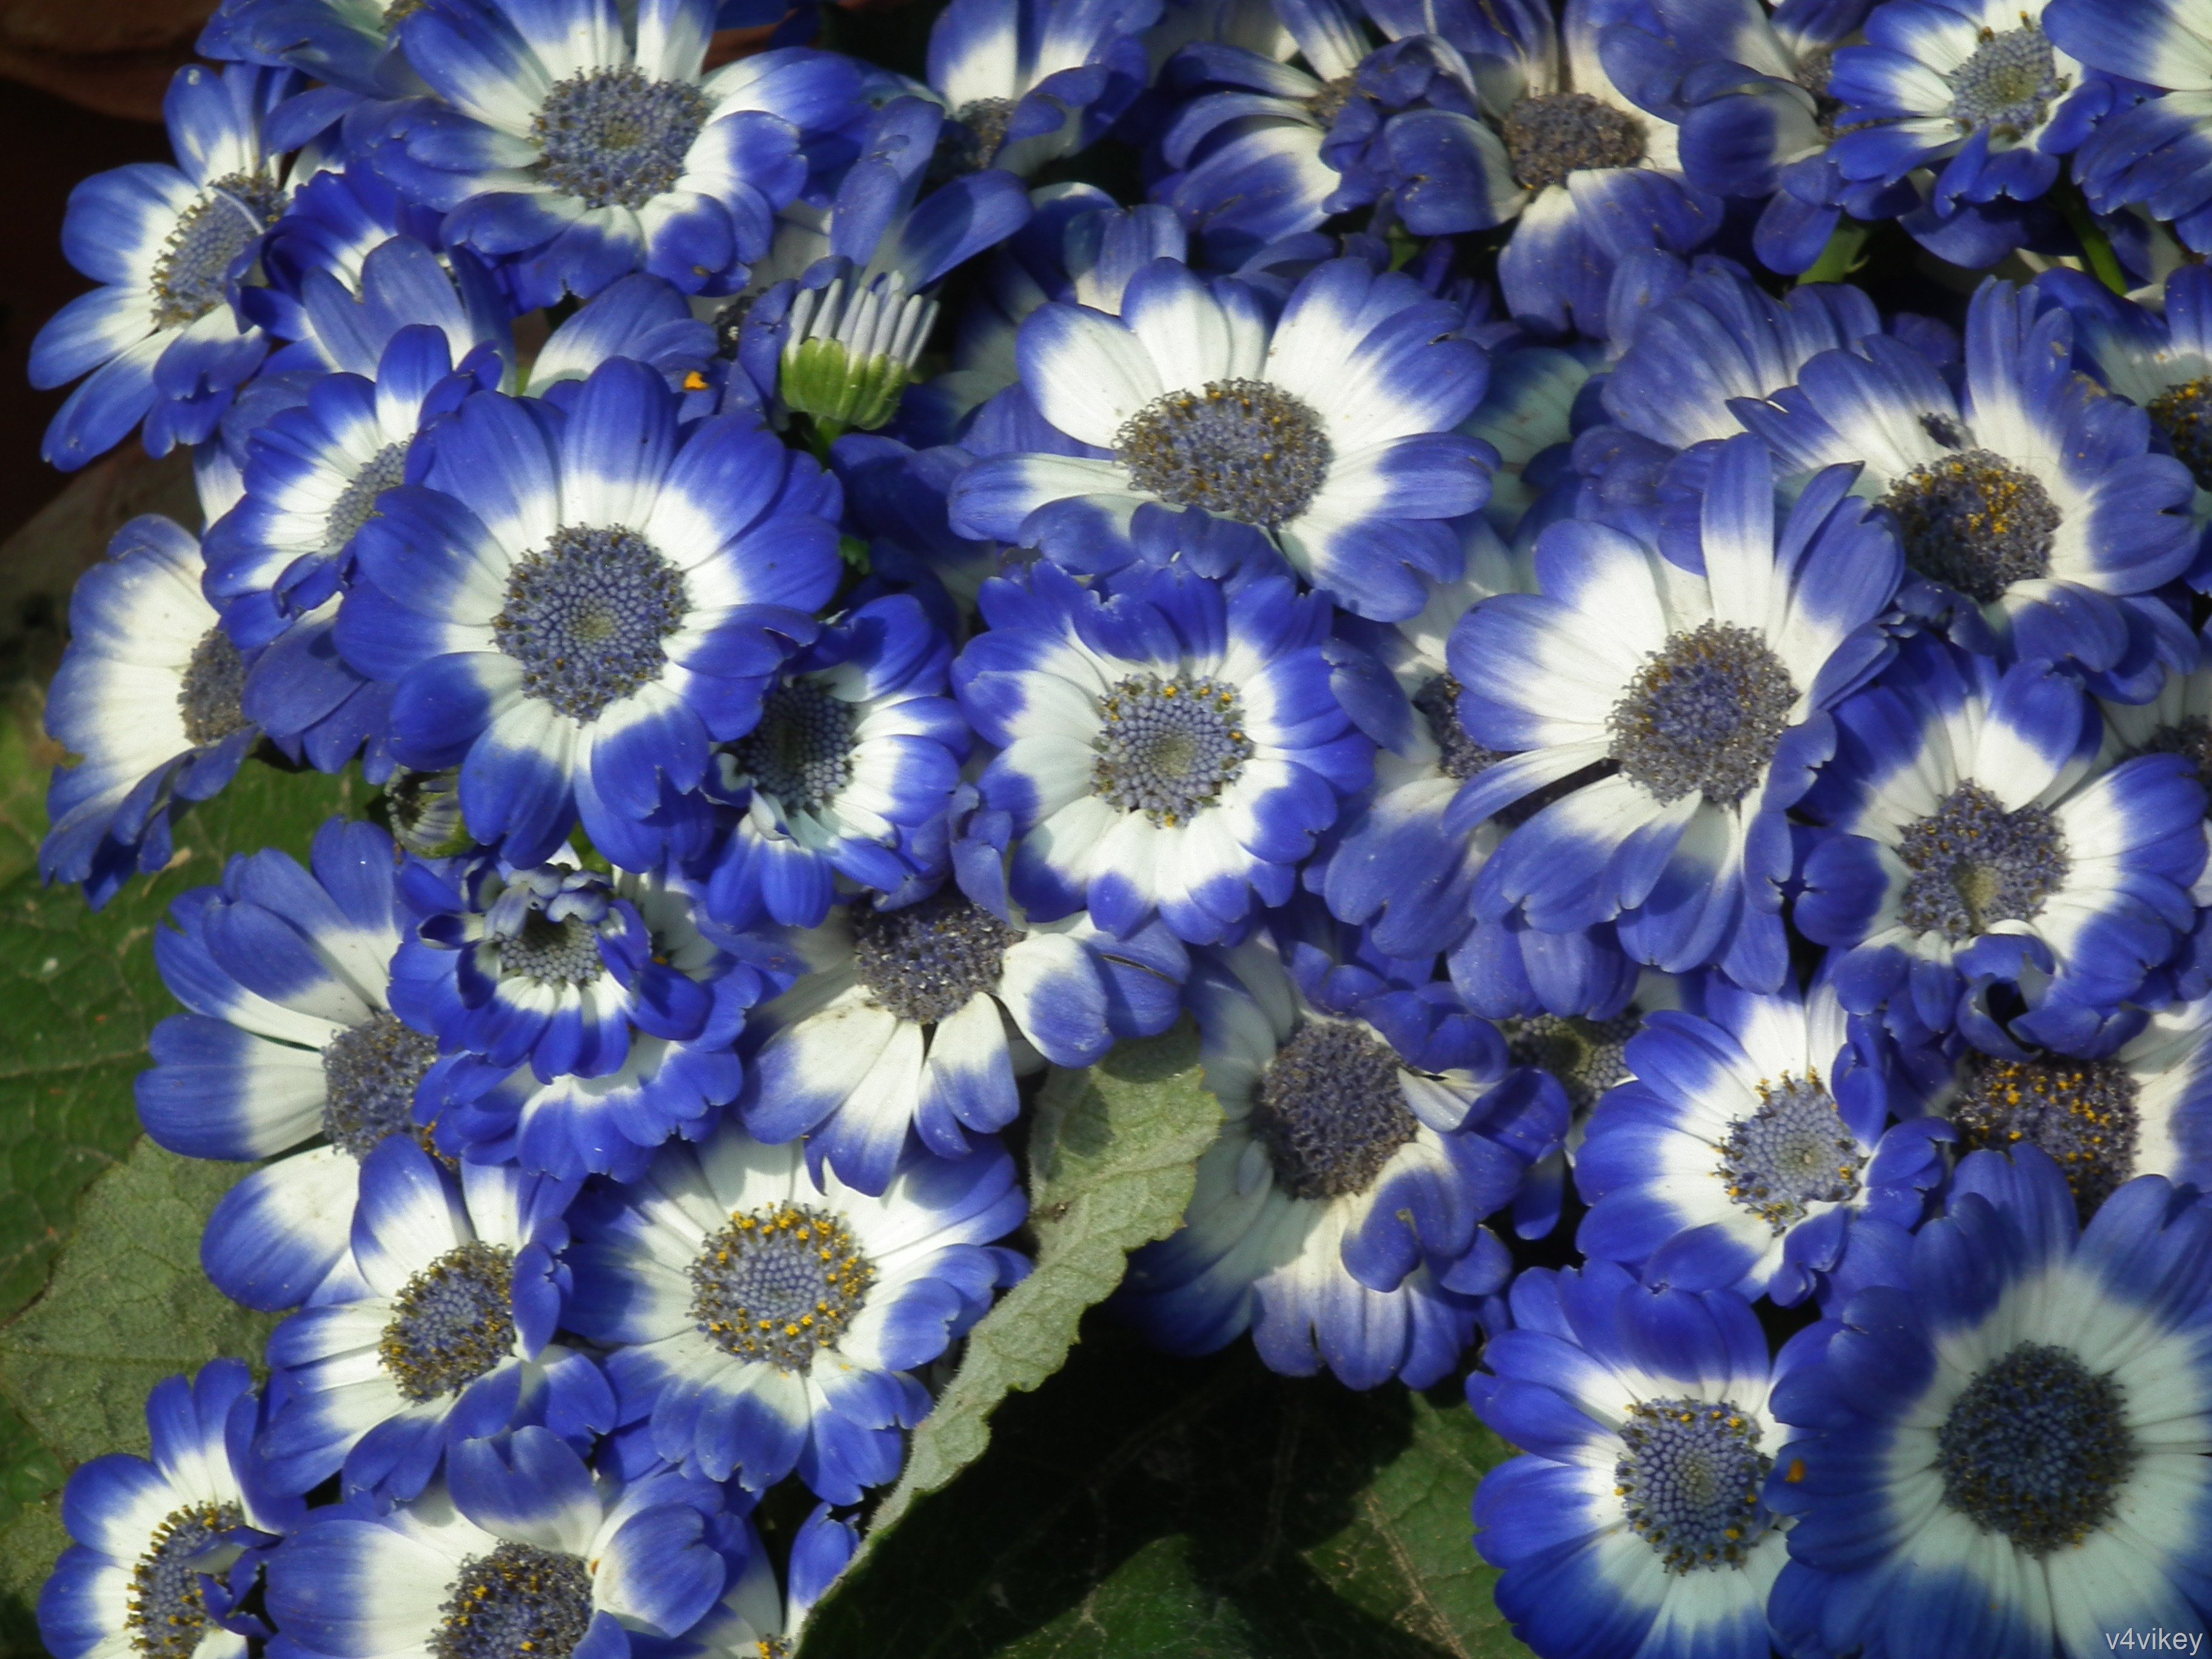 Beautiful Nature Blue White Color Cineraria Flower Images 3648x2736